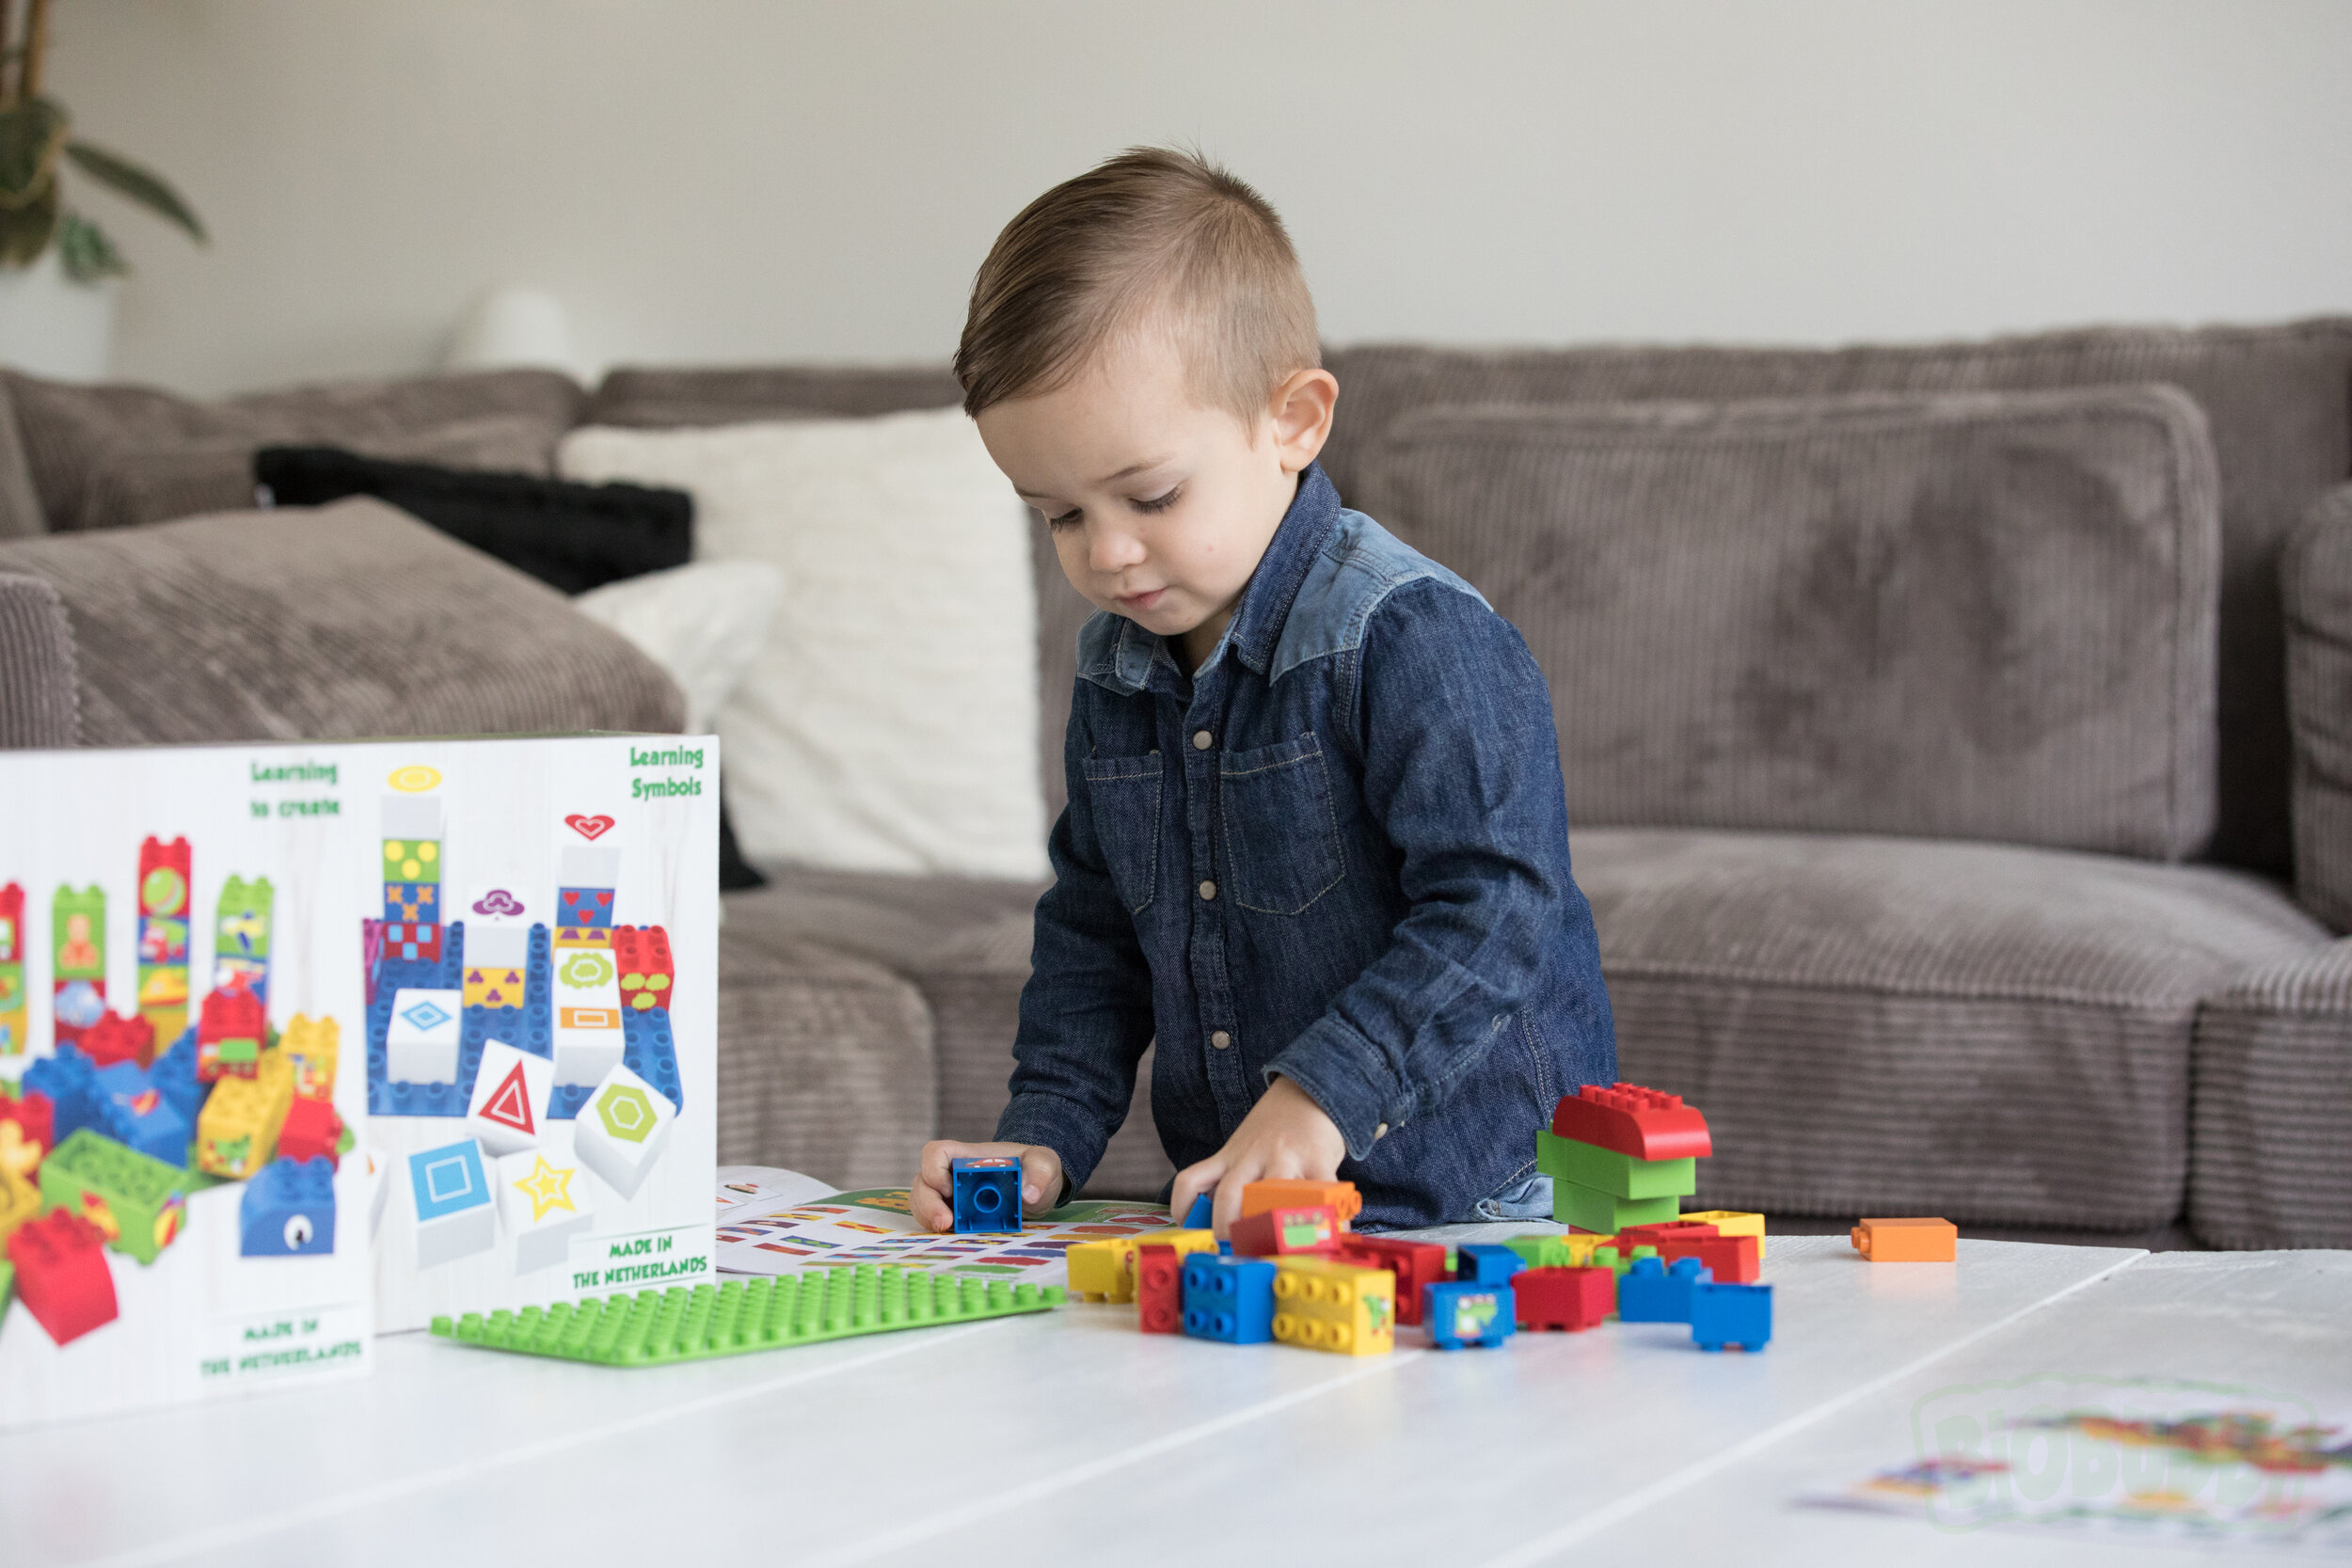 BiOBUDDi Building Blocks - Made in the Netherlands from the waste product of Sugar Cane these are the ultimate Eco-blocks!Created by father of two these building blocks have been 5 year in the making.Packaging is made from Recycled Card or Bio-plastics.